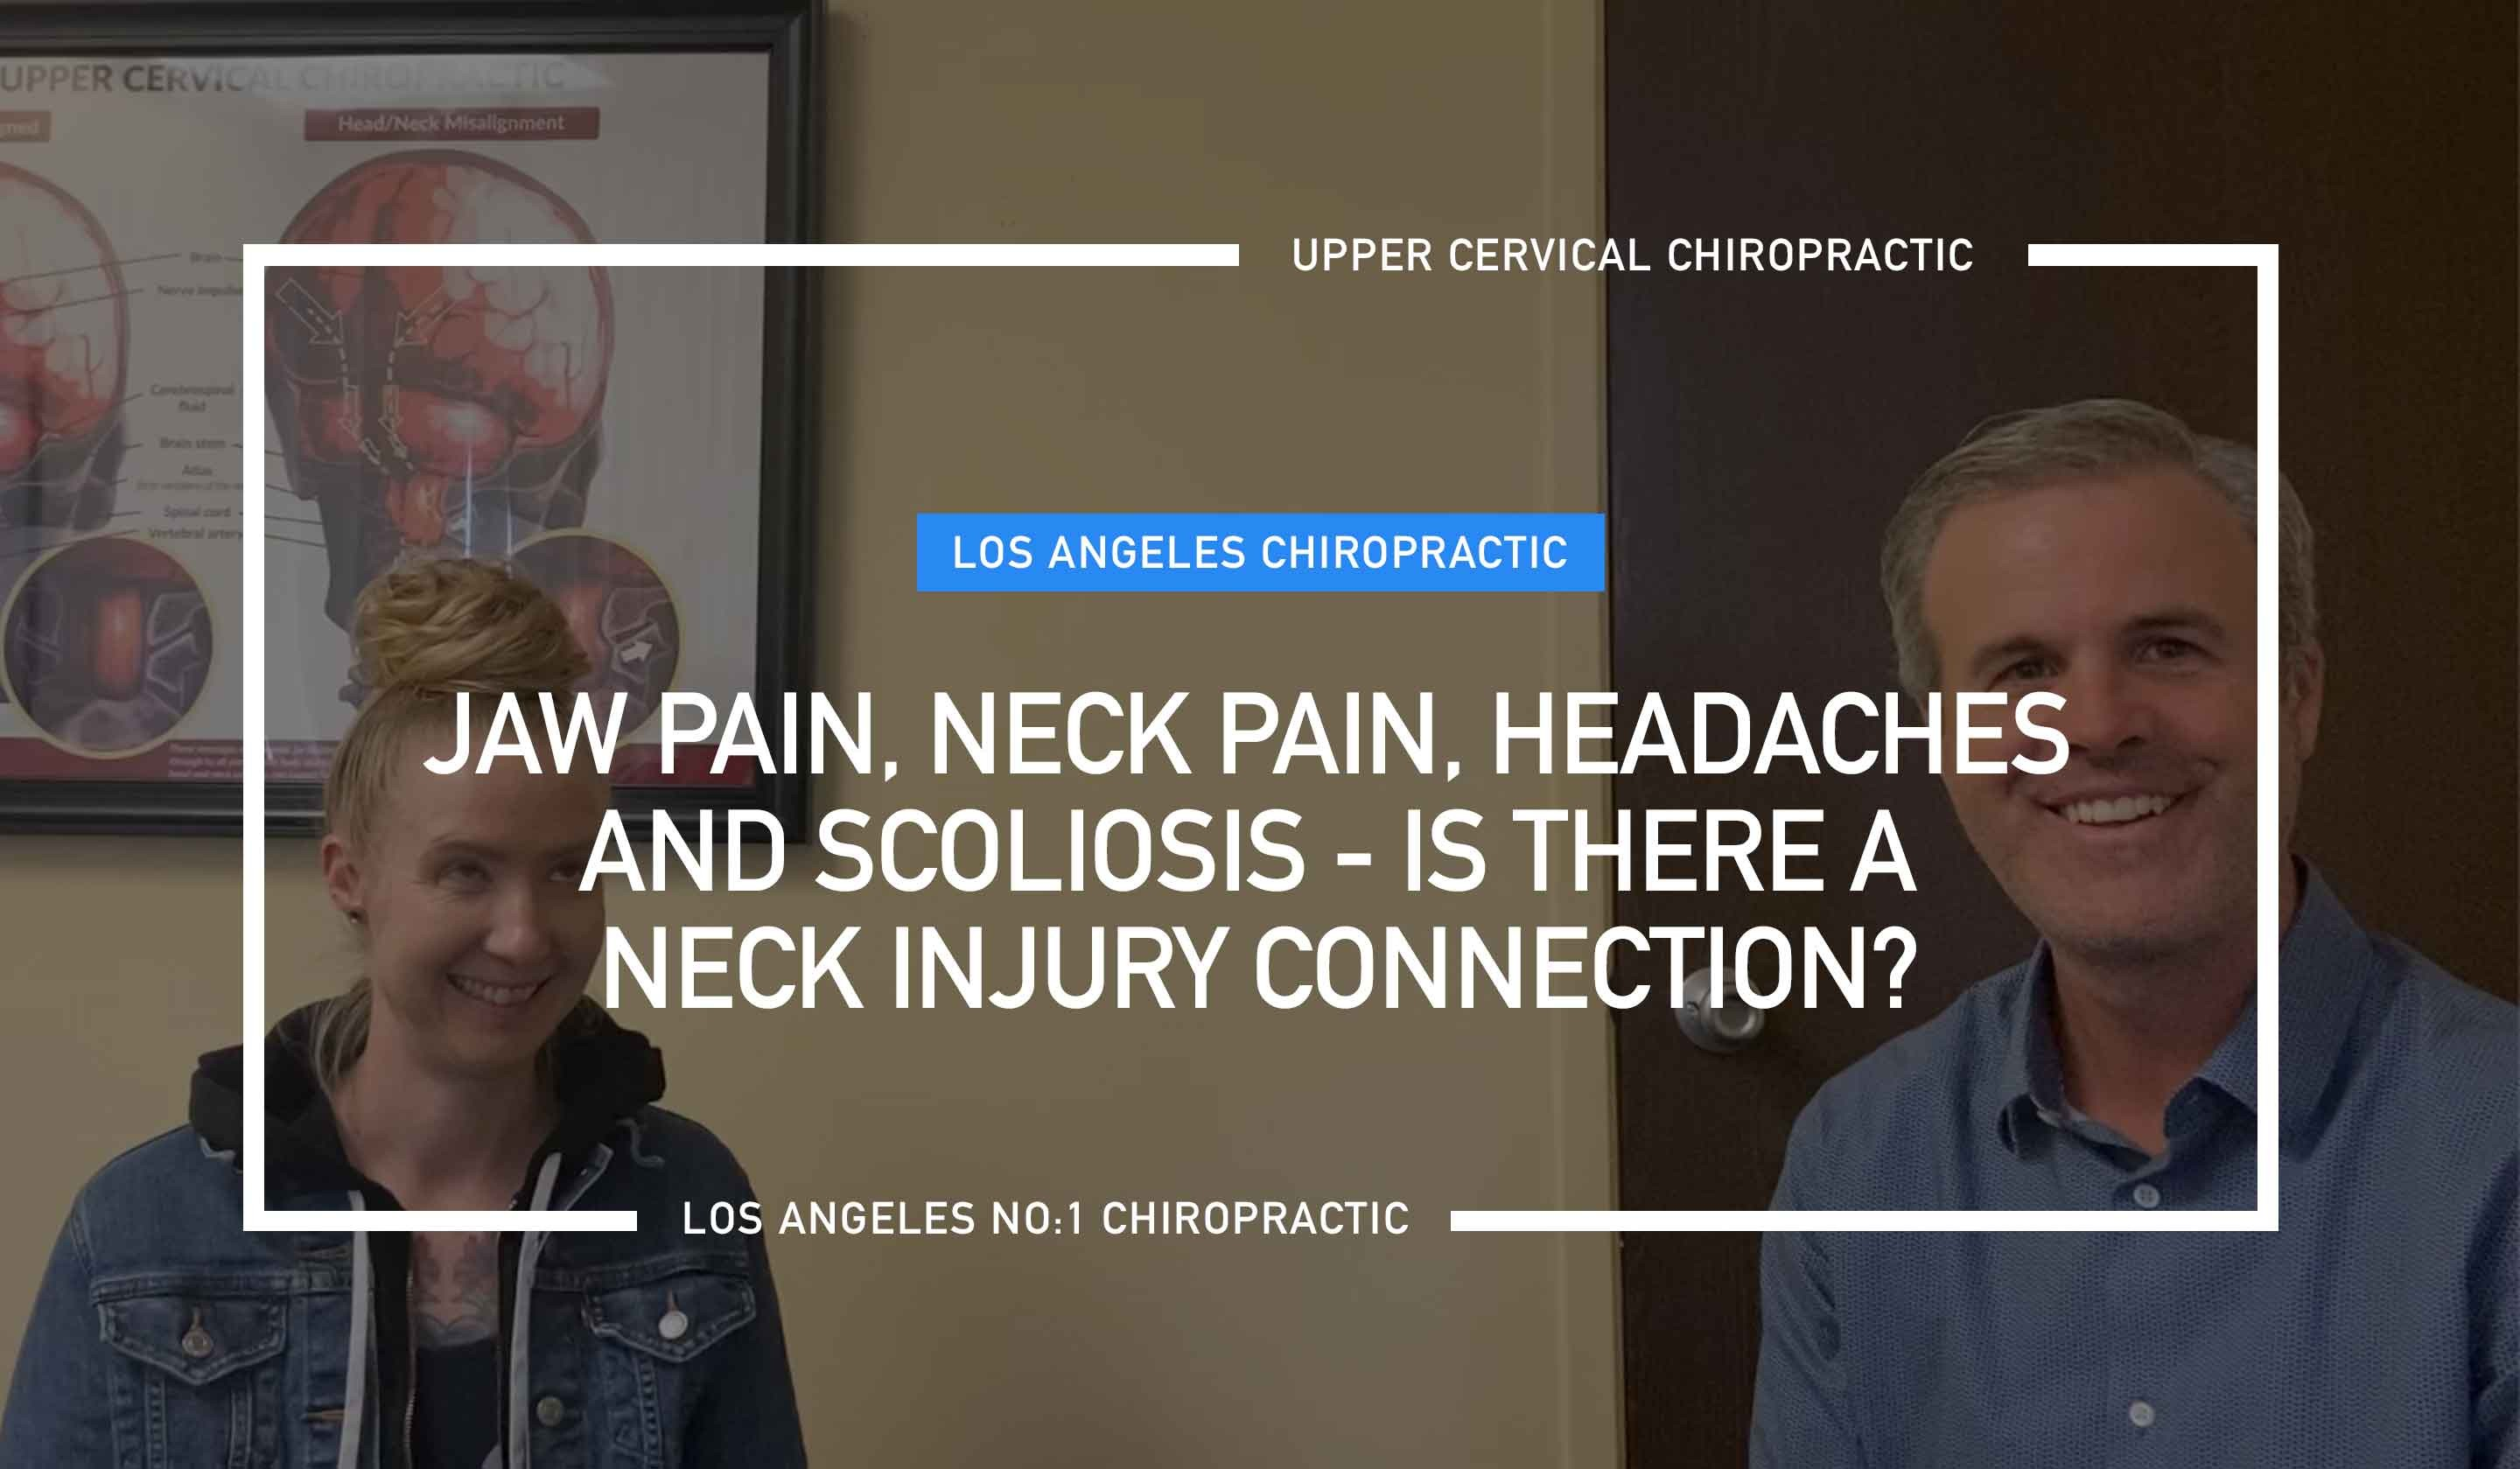 In this article, we will discuss a patient who has been under long term upper cervical corrective care.  Generally speaking, our current mainstream health care system is mechanistic and instead of viewing the body holistically it compartmentalizes the body and views multiple health issues as separate entities.